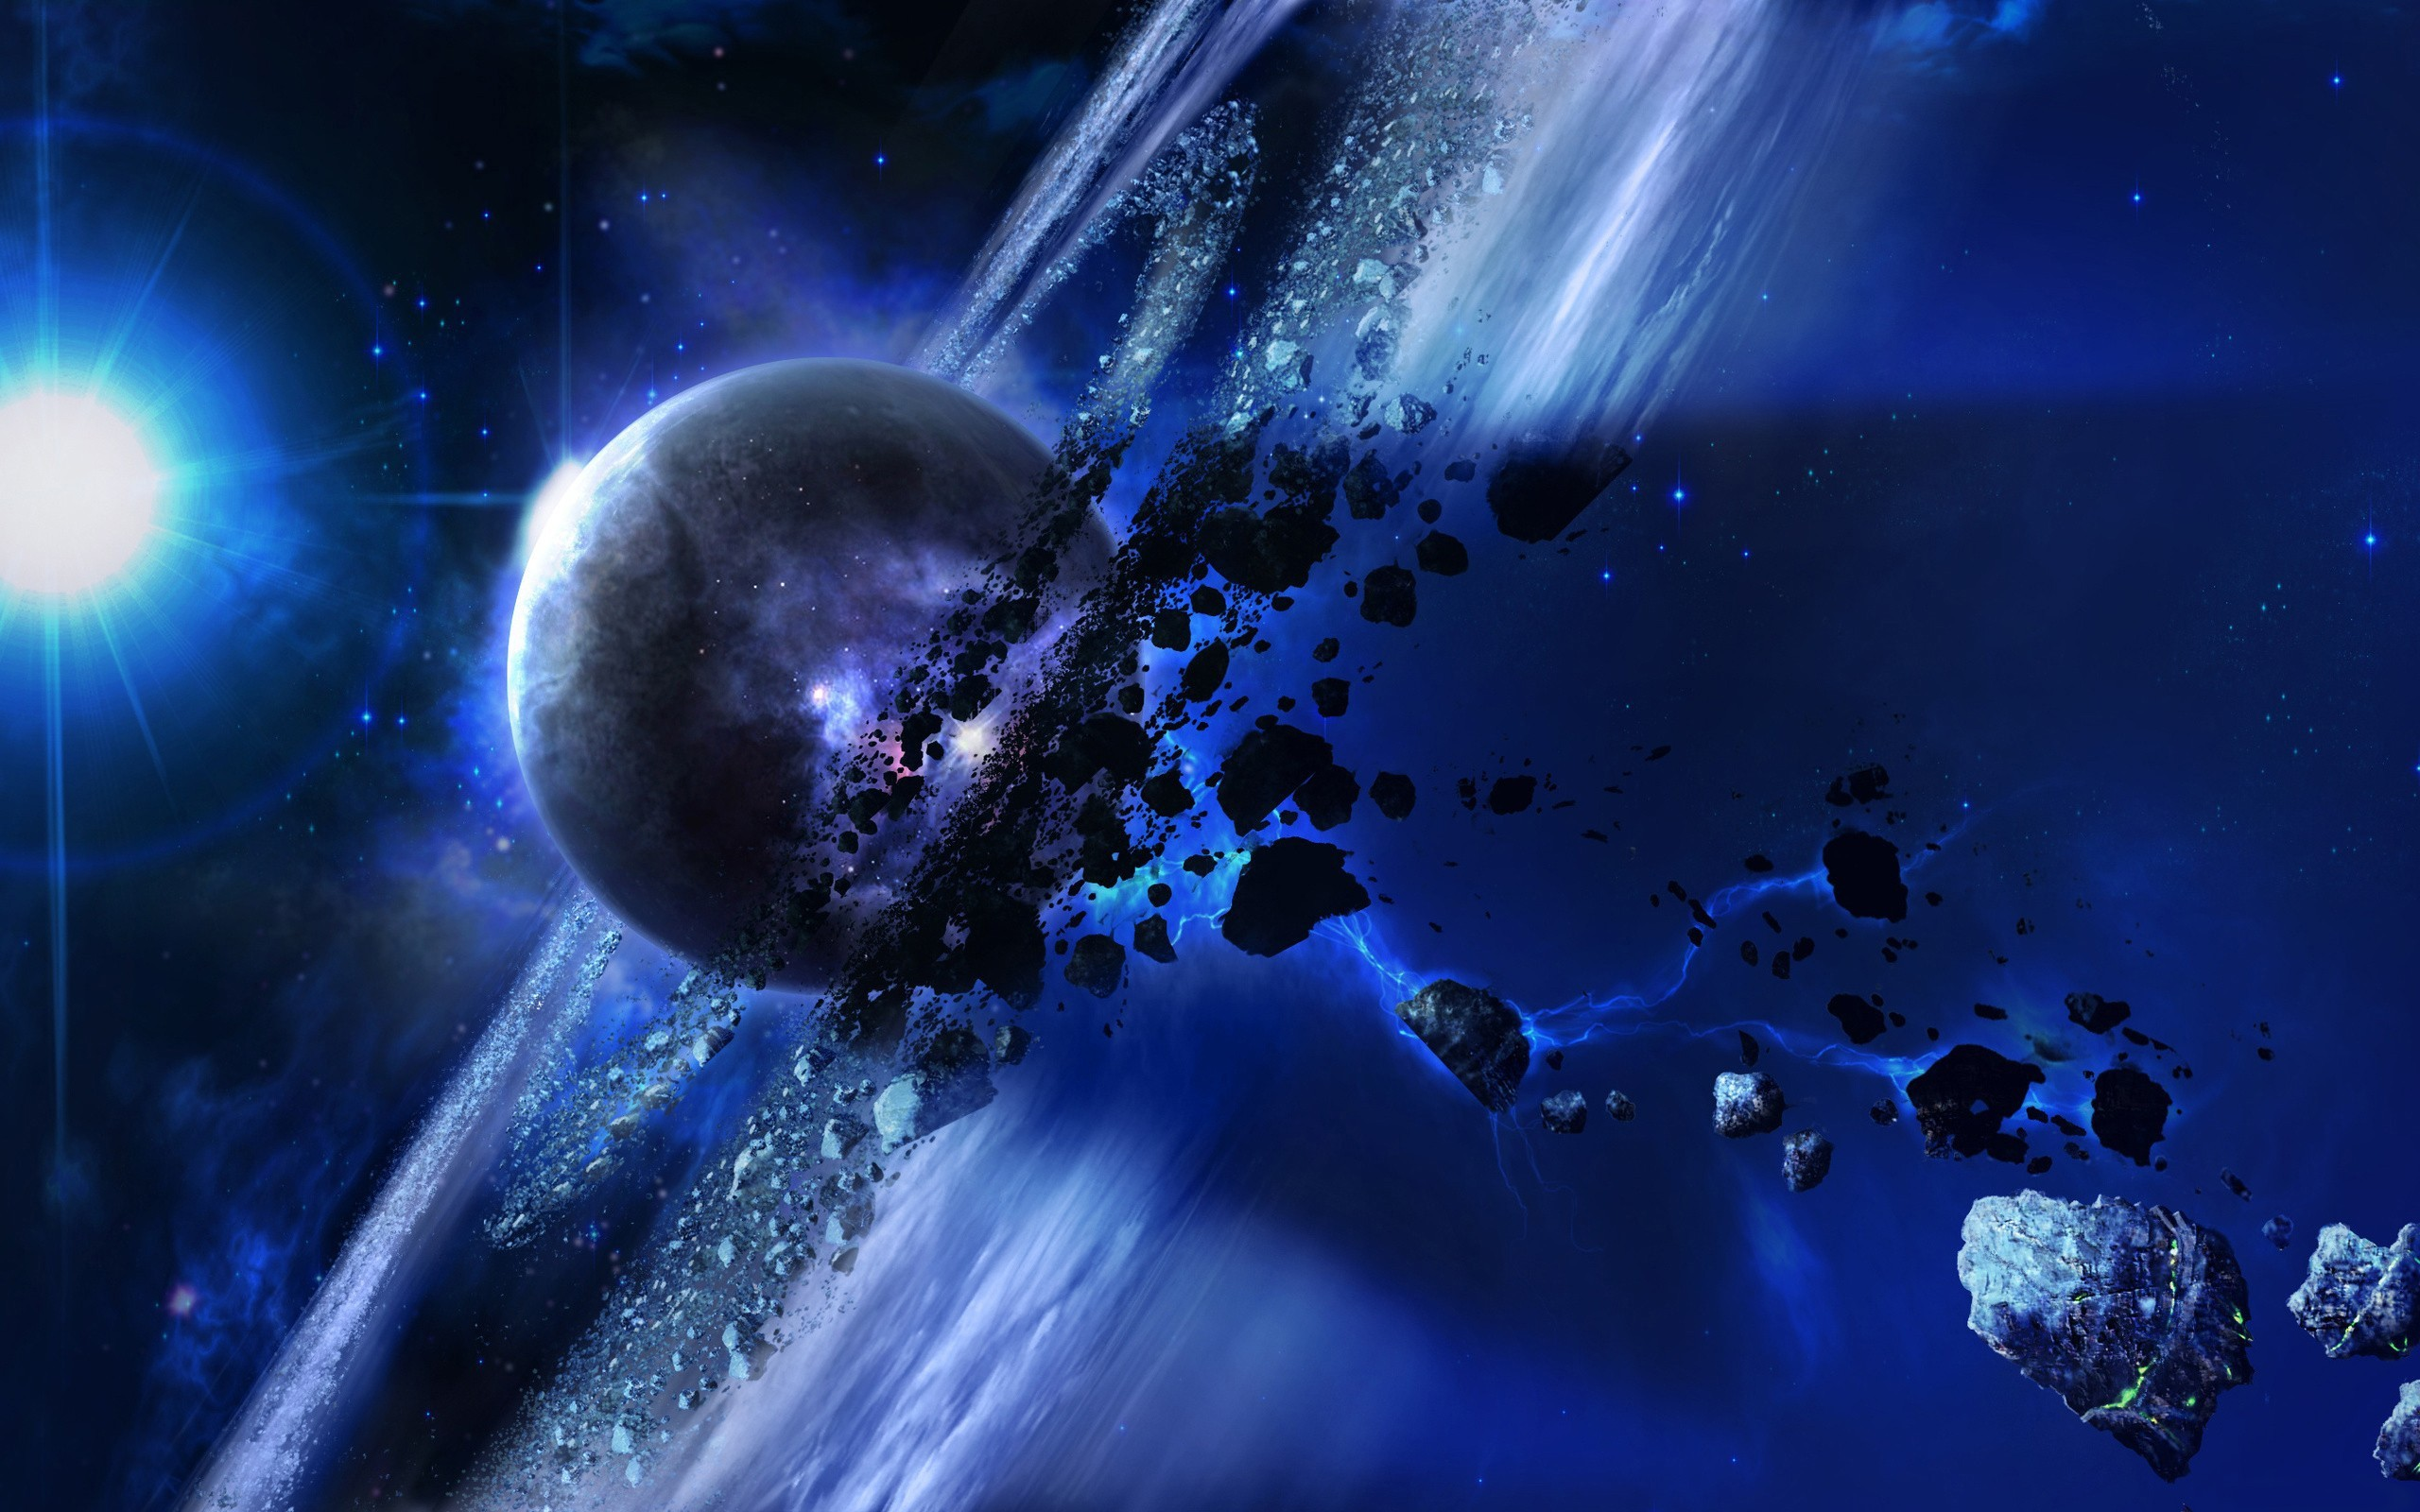 Wallpaper space, planets, asteroid